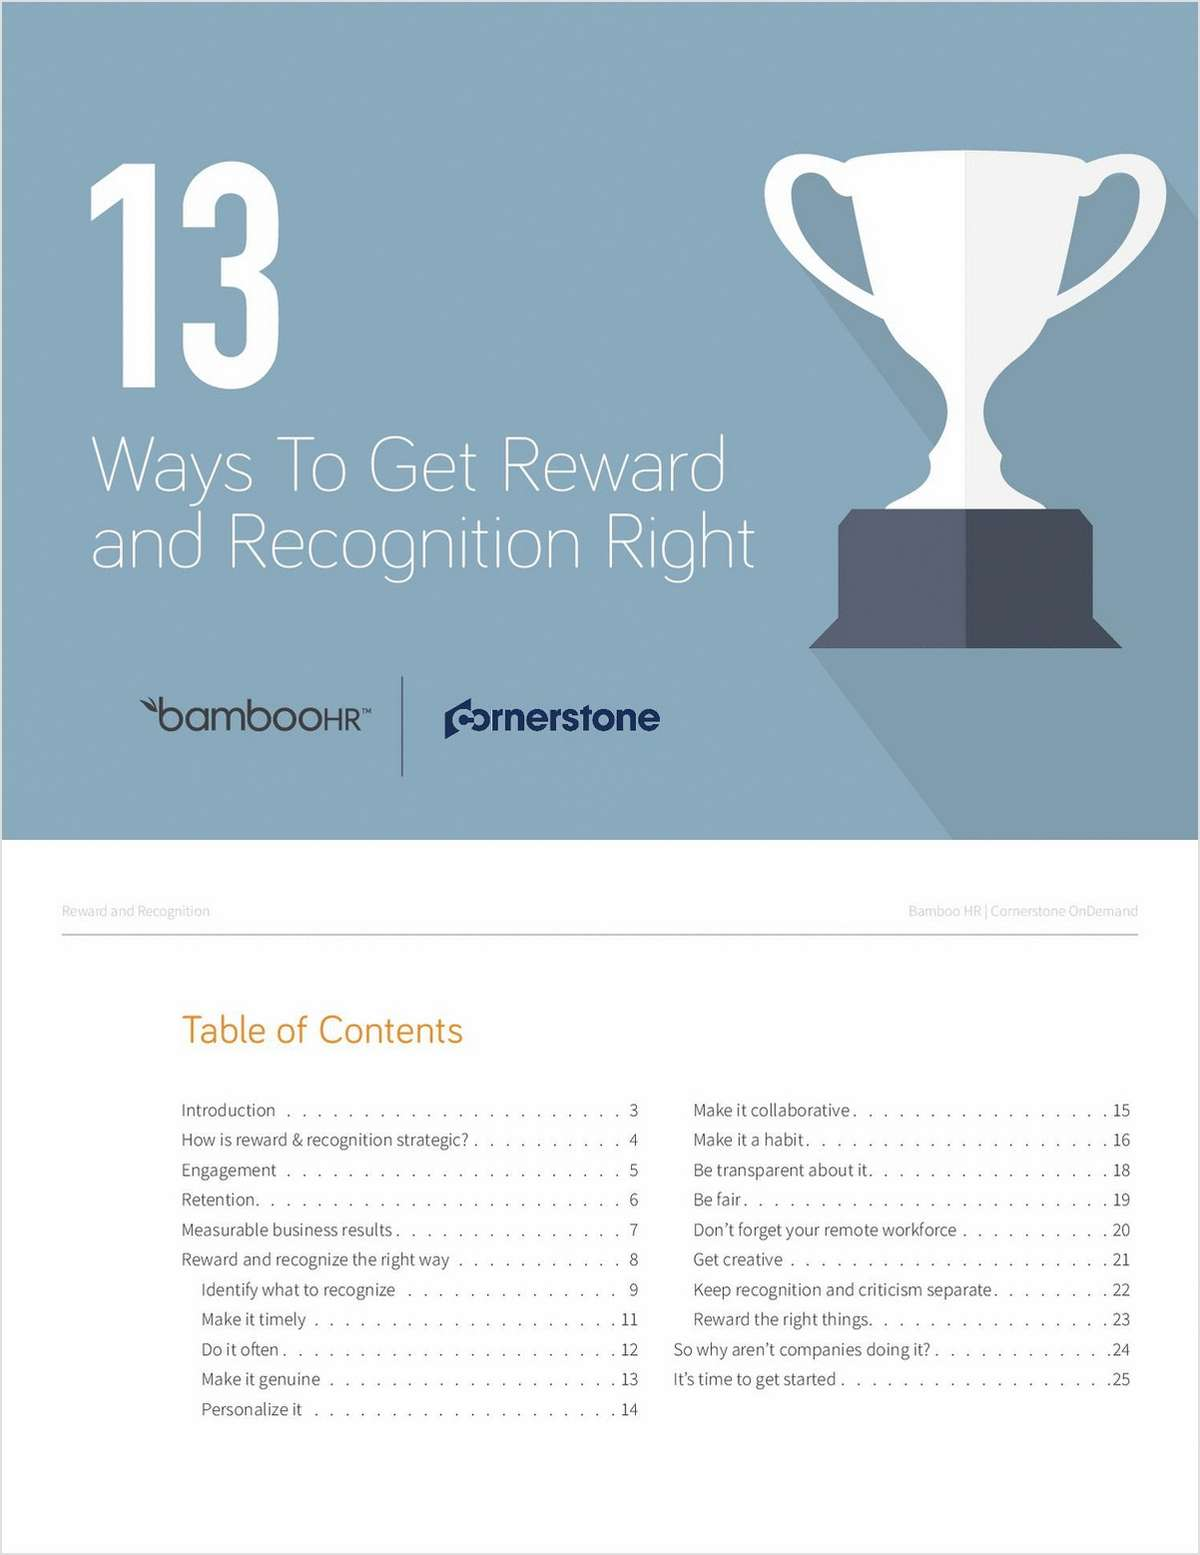 13 Ways to Get Reward and Recognition Right